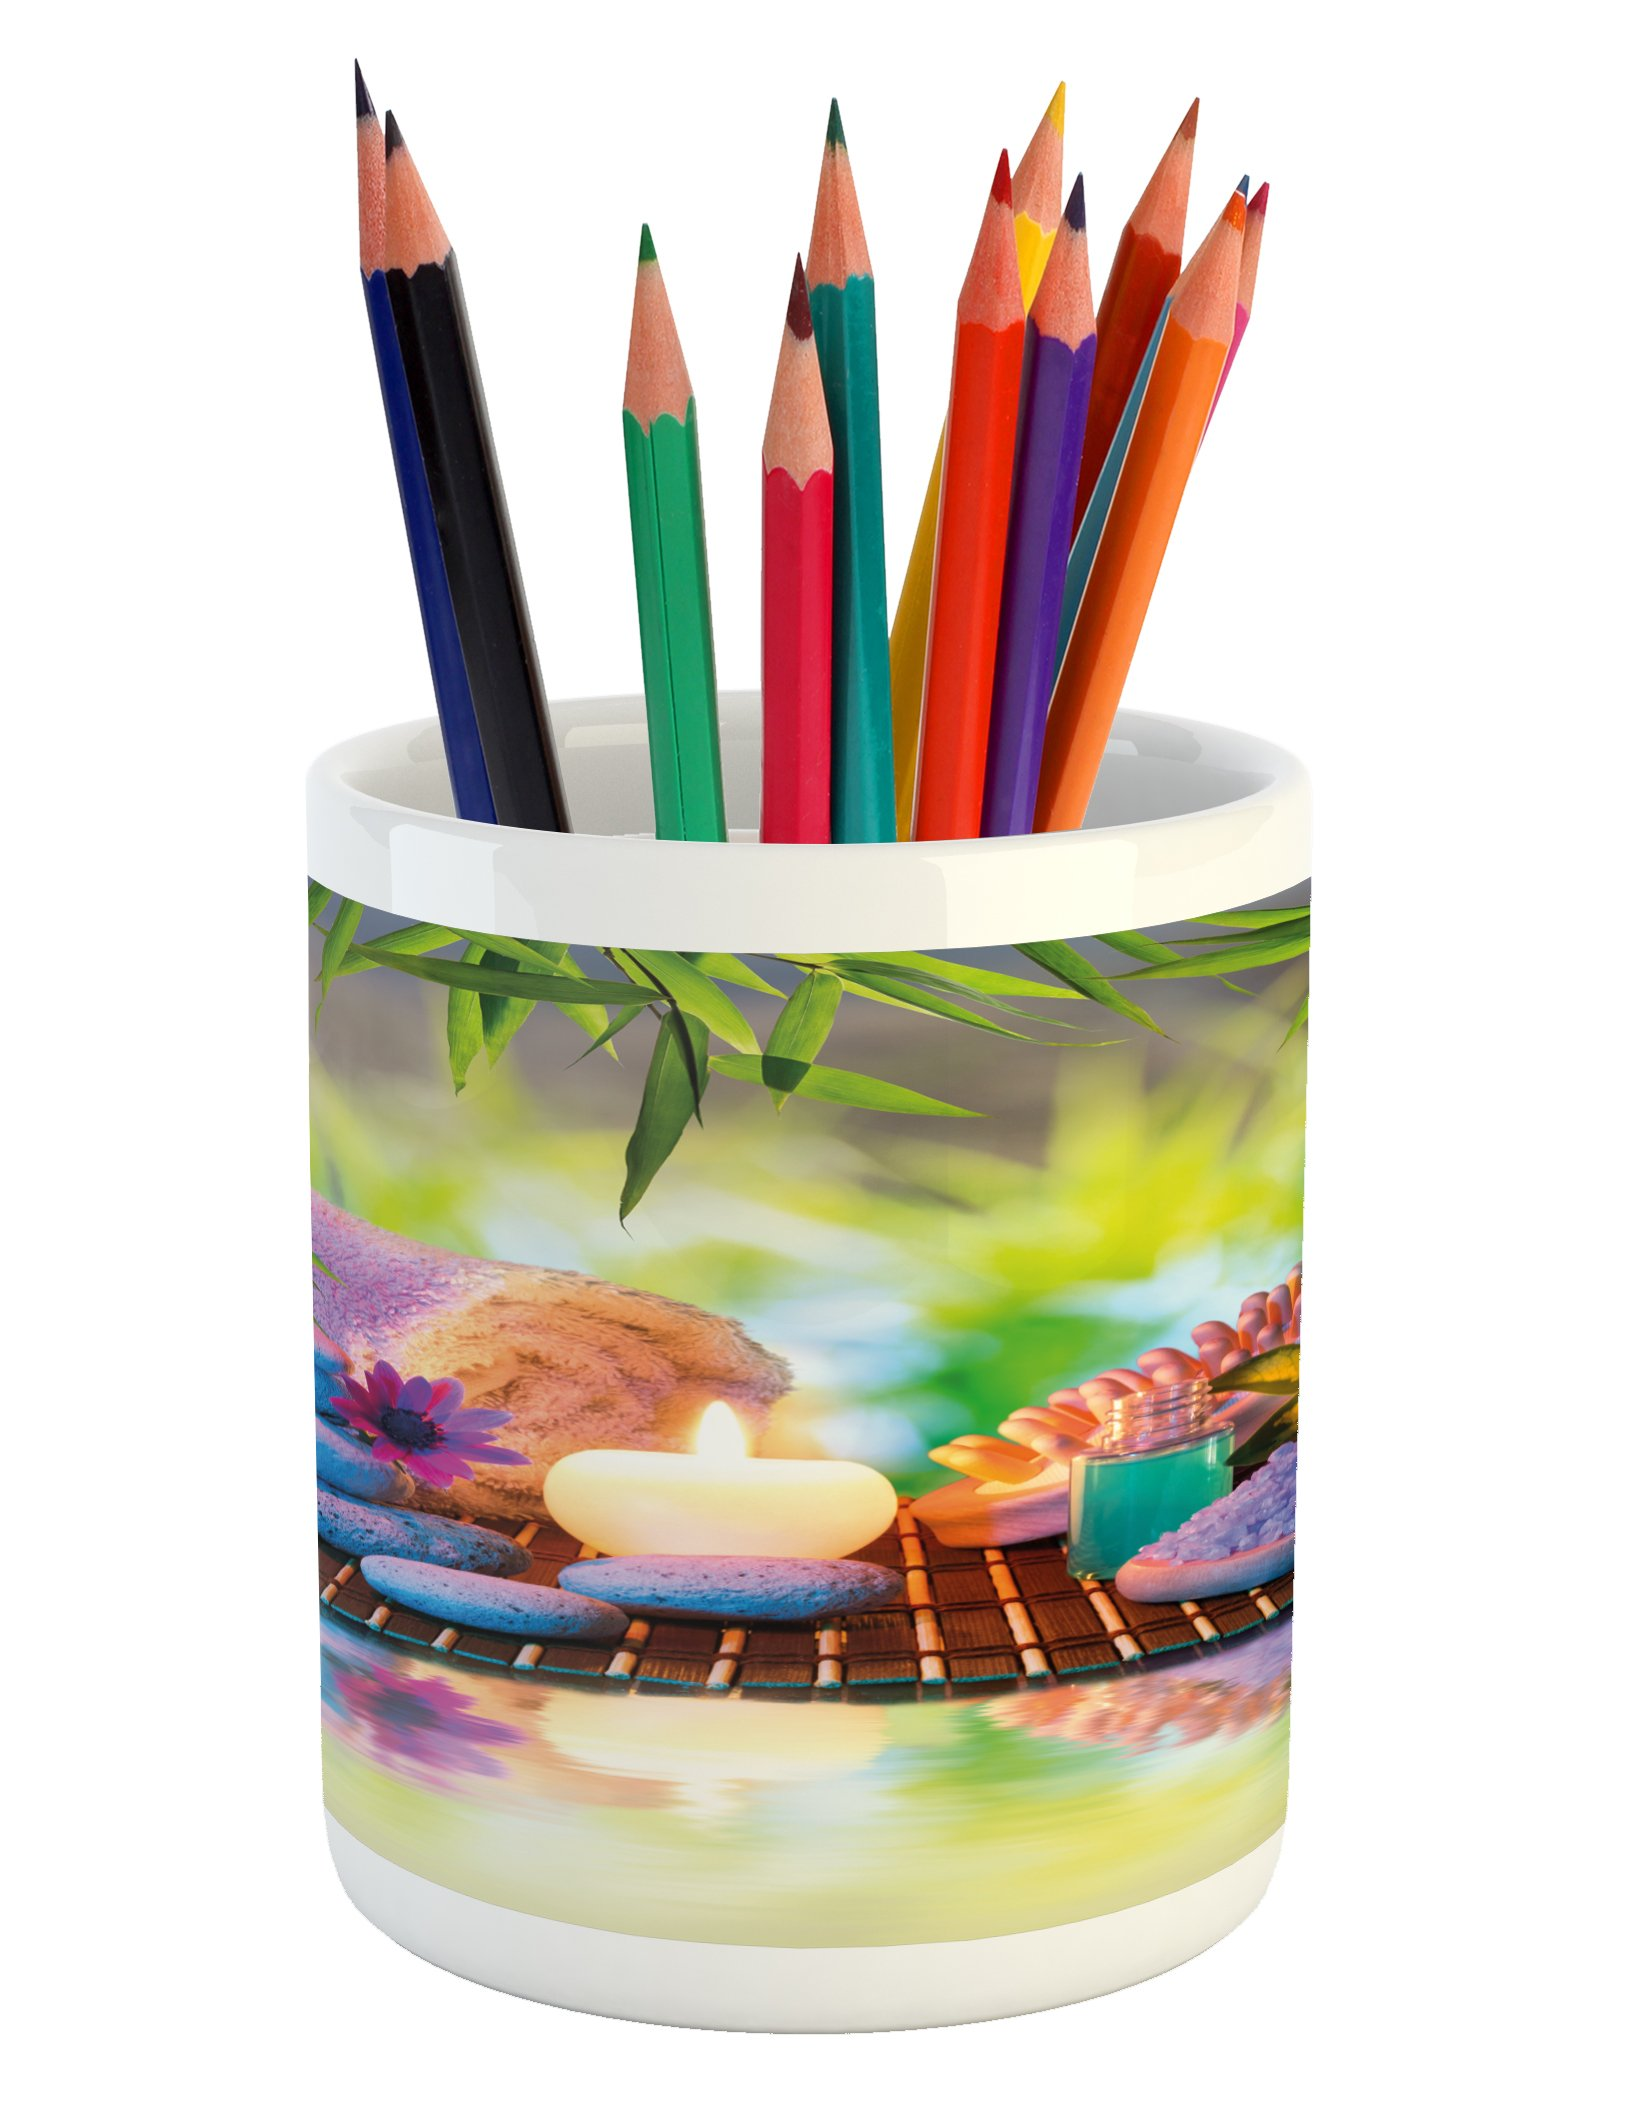 Ambesonne Spa Pencil Pen Holder, Stones with Candles Spiritual Eastern Yoga Relaxation Meditation Chakra Bamboos Print, Printed Ceramic Pencil Pen Holder for Desk Office Accessory, Multicolor